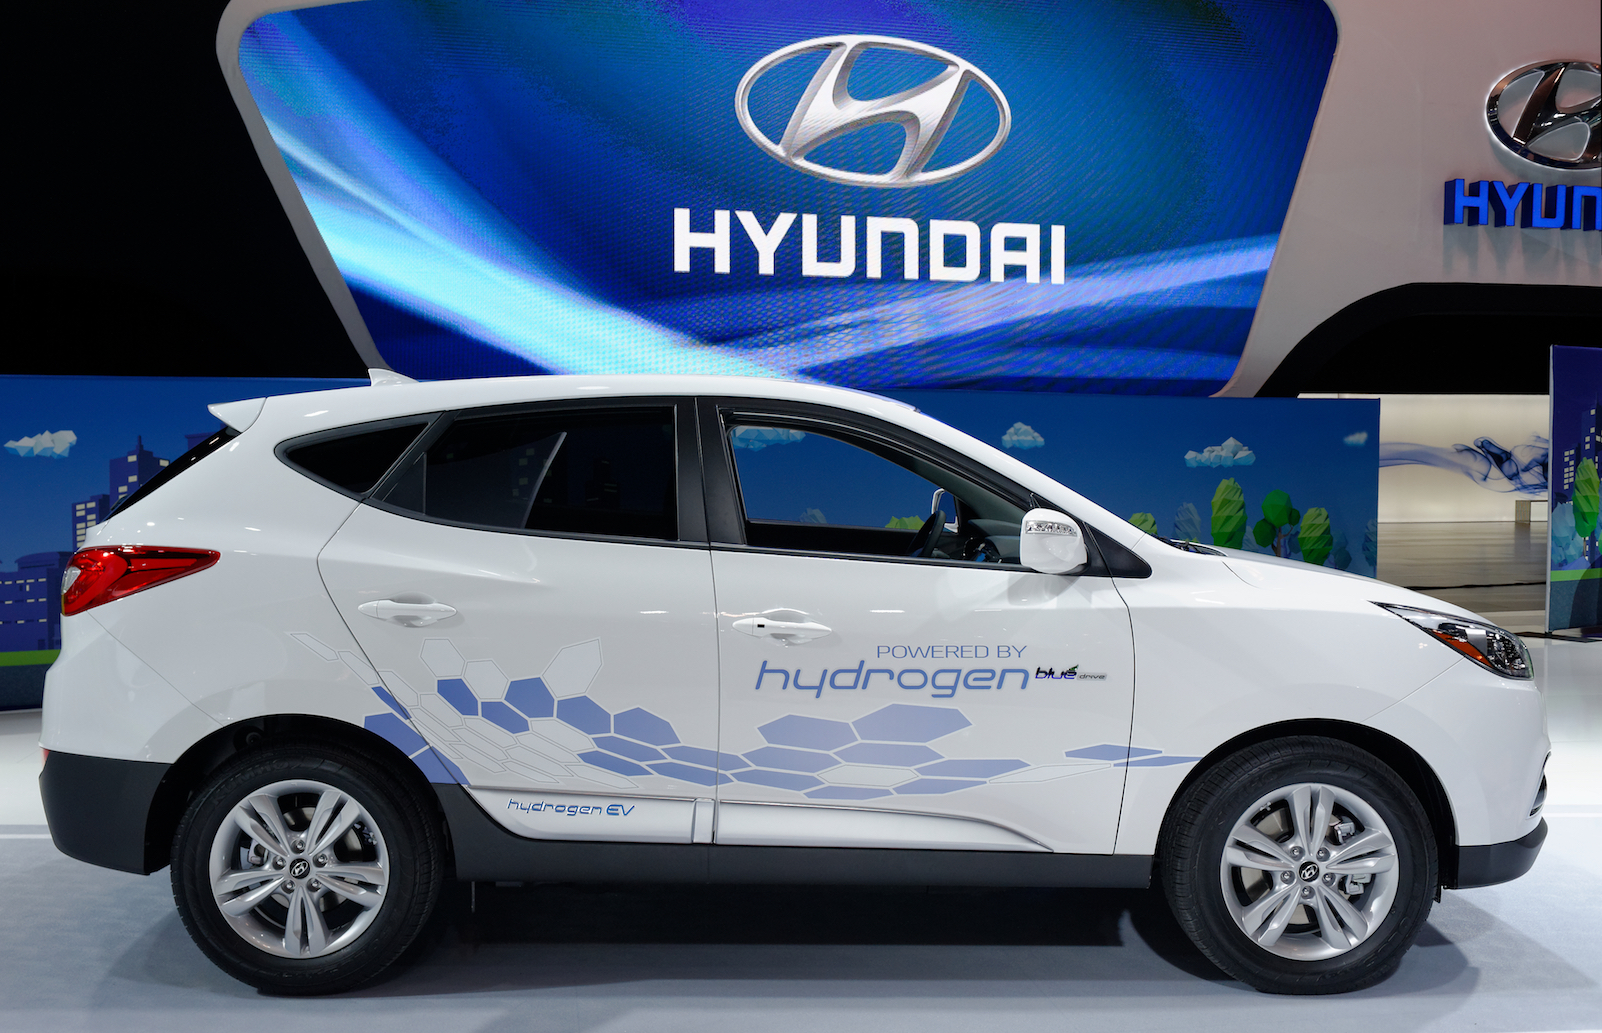 Hydrogen fuel cell cars could be a technology hero that helps replace fossil fuel vehicles, but not if drivers can't find fueling stations.